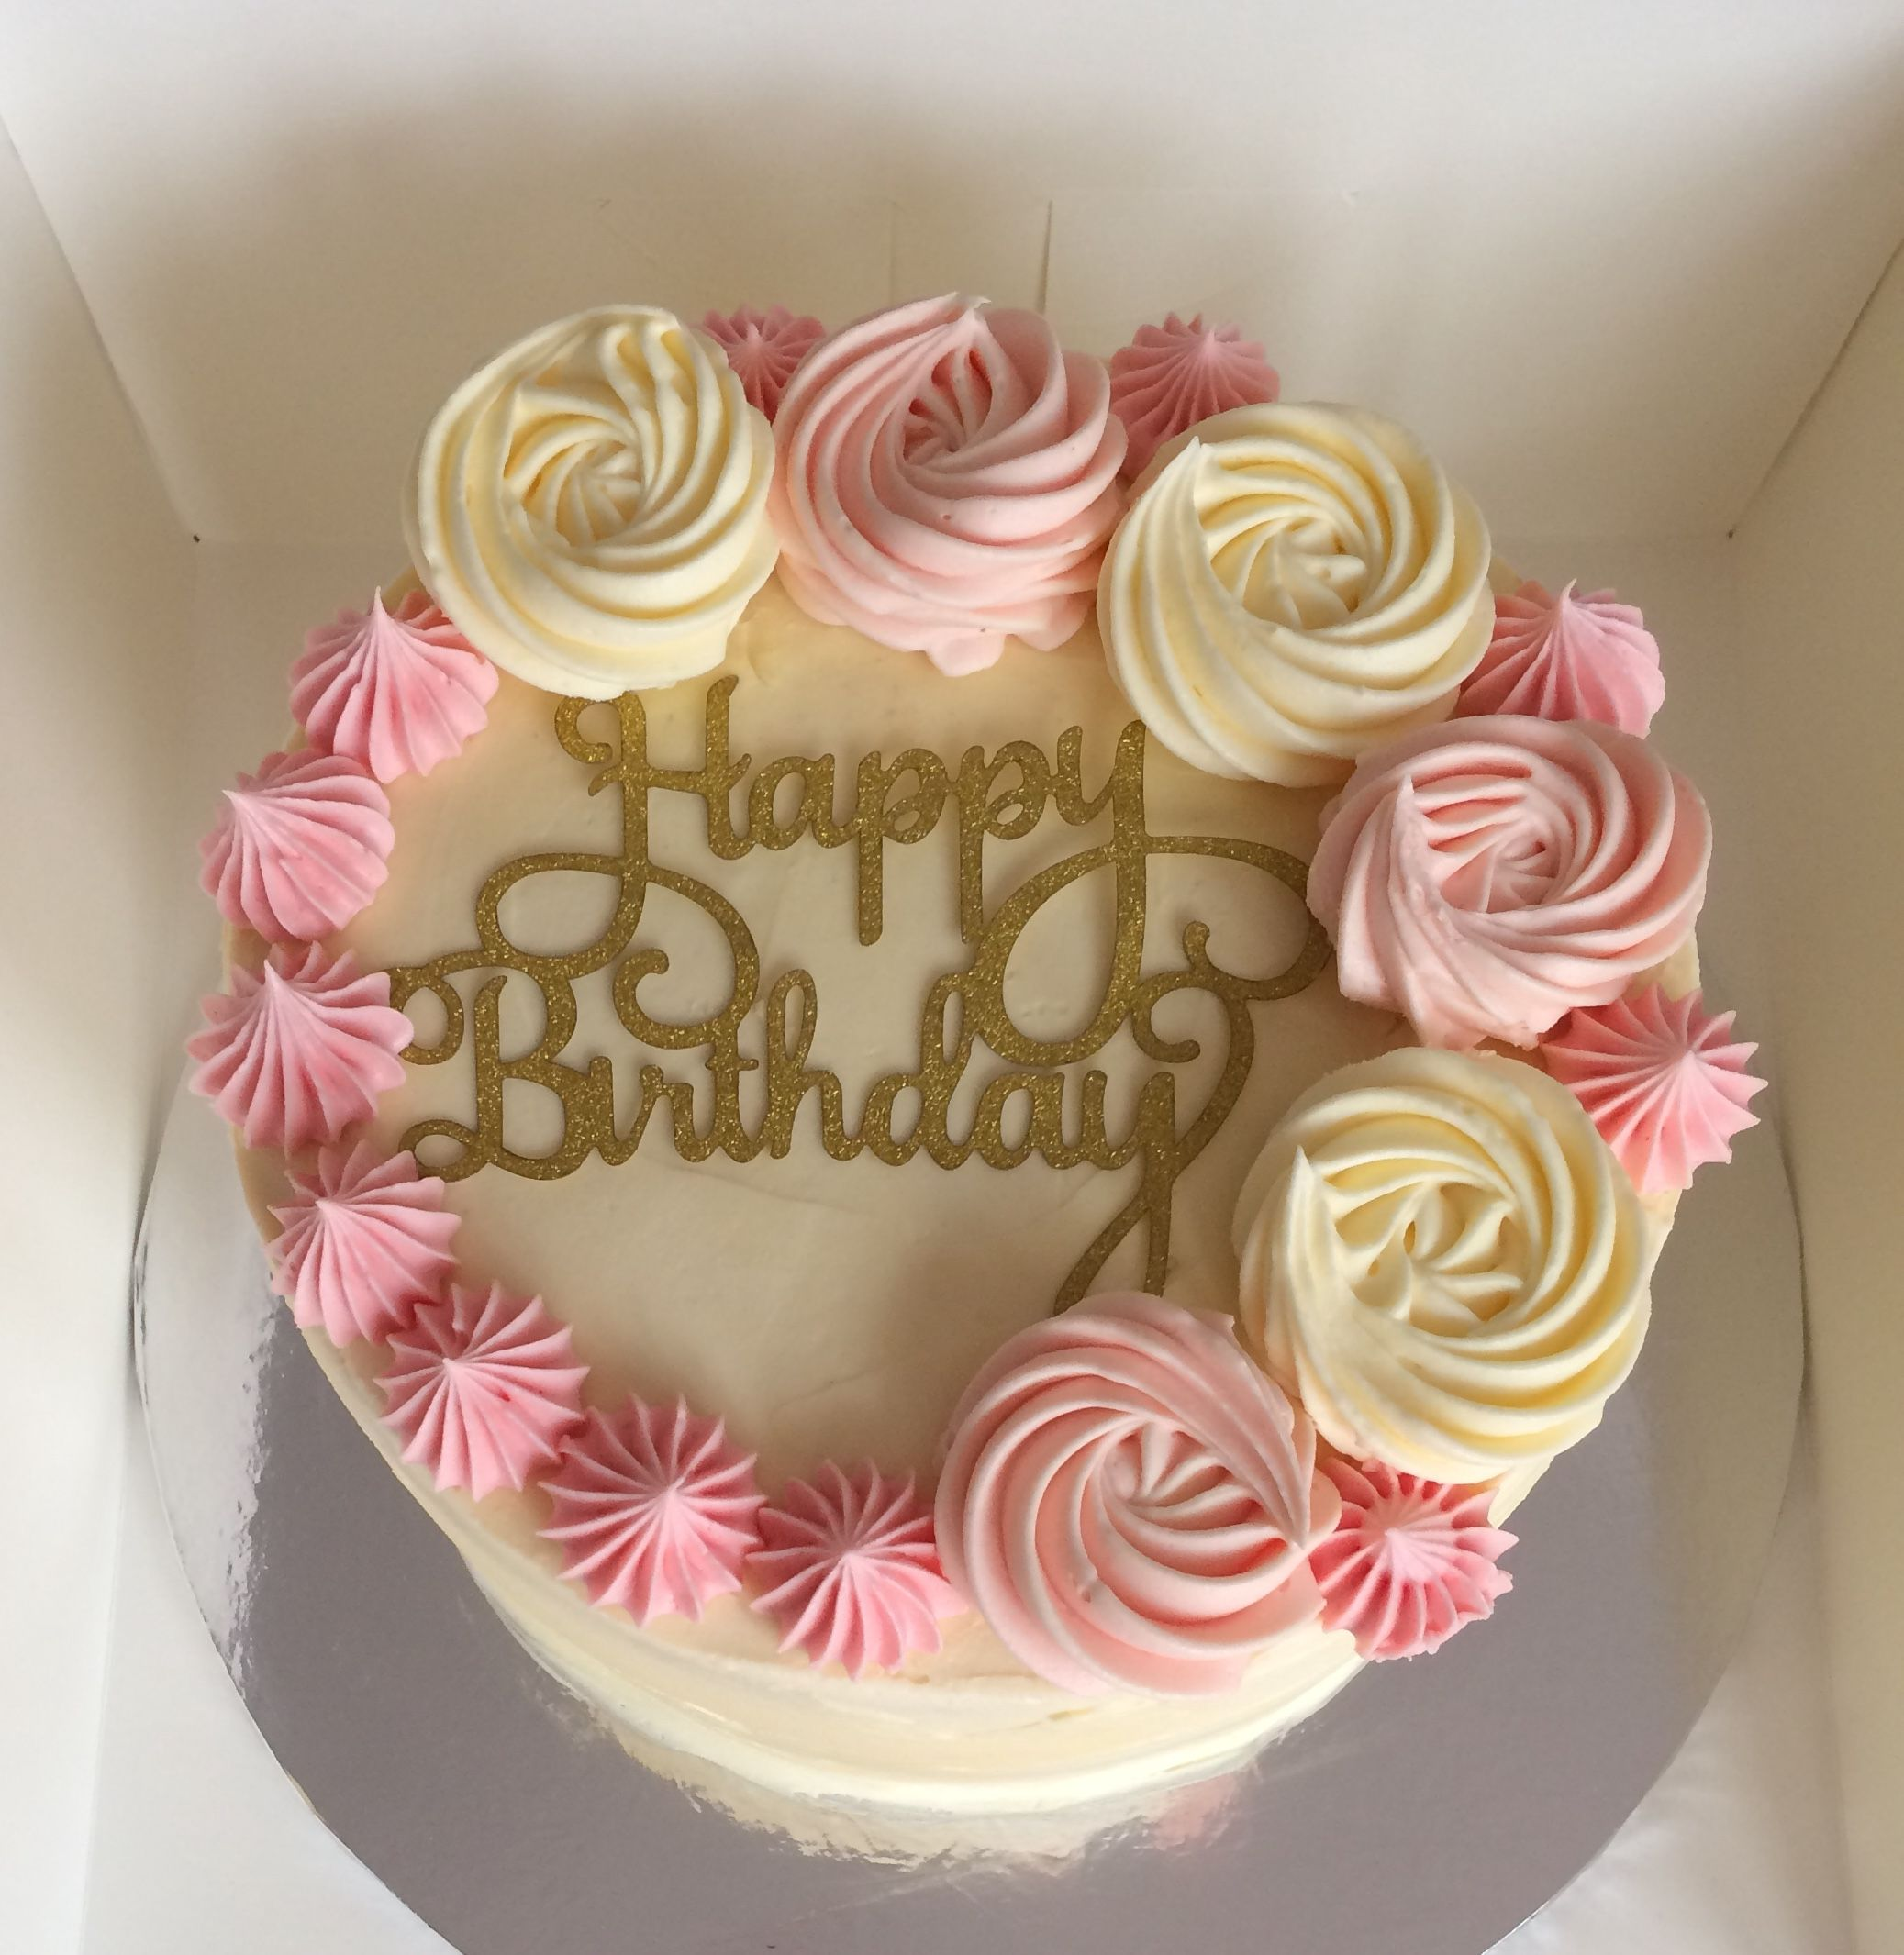 Stupendous Swirls Birthday Cake Buttercream Birthday Cake Simple Cake Personalised Birthday Cards Epsylily Jamesorg